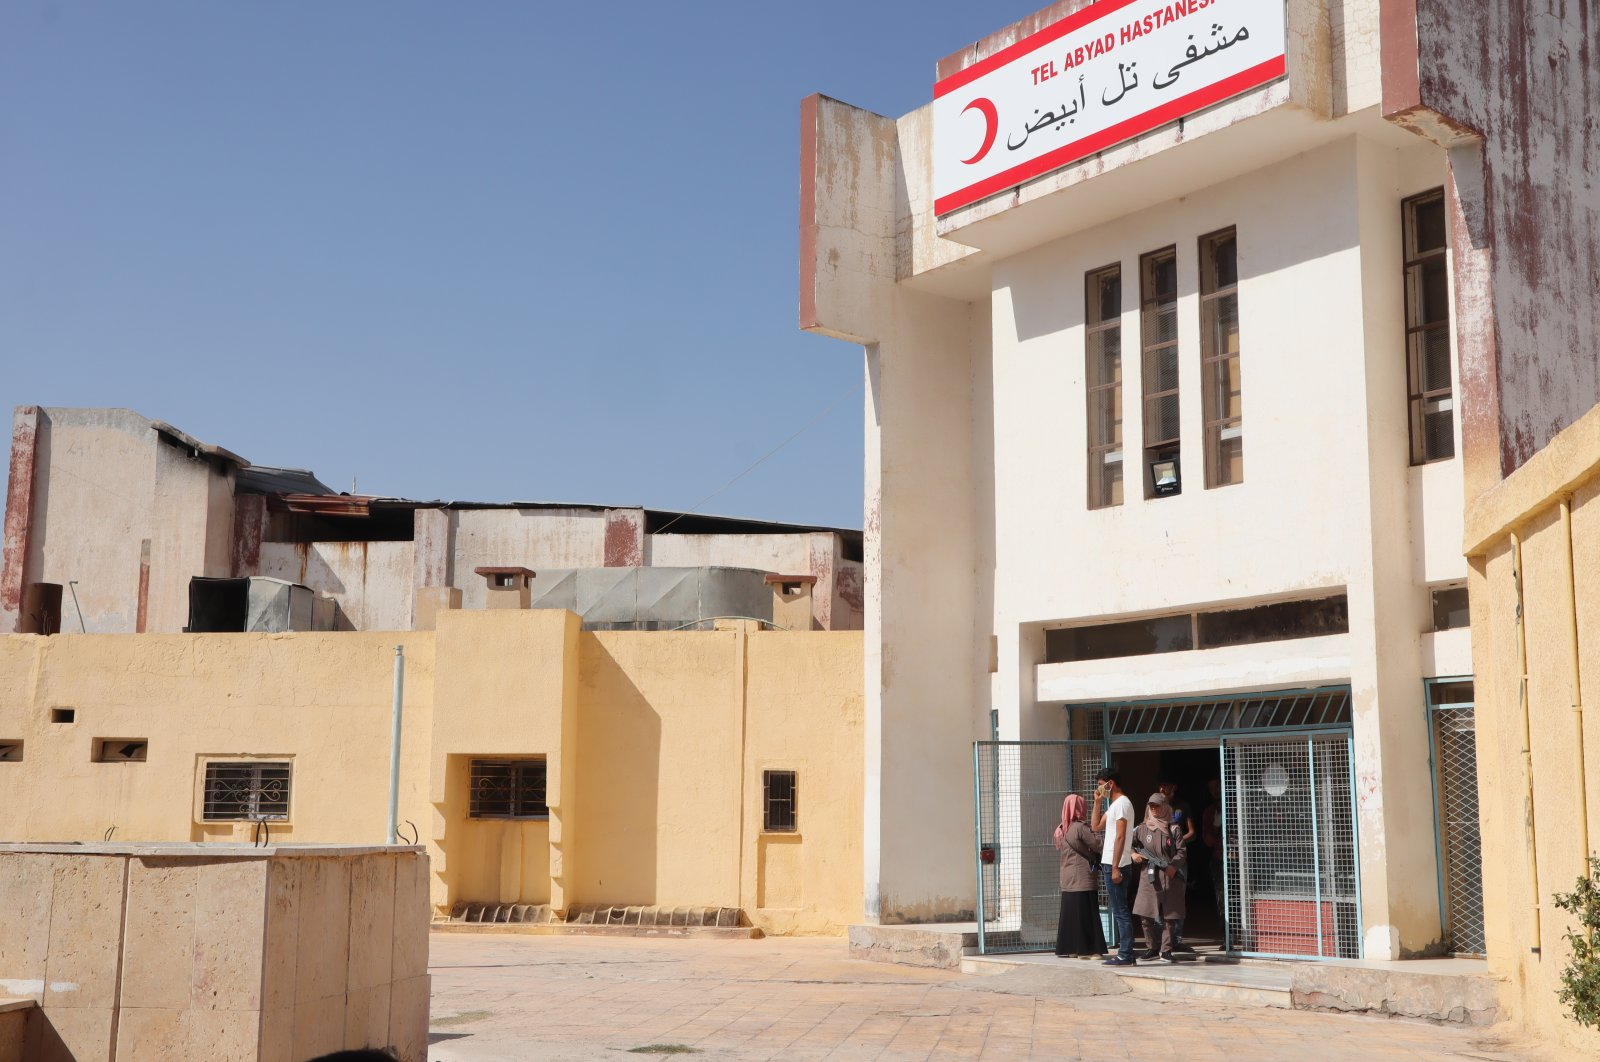 People wait in front of the hospital in northern Syria's Tal Abyad, Oct. 11, 2020. (Photo by Dilara Aslan)